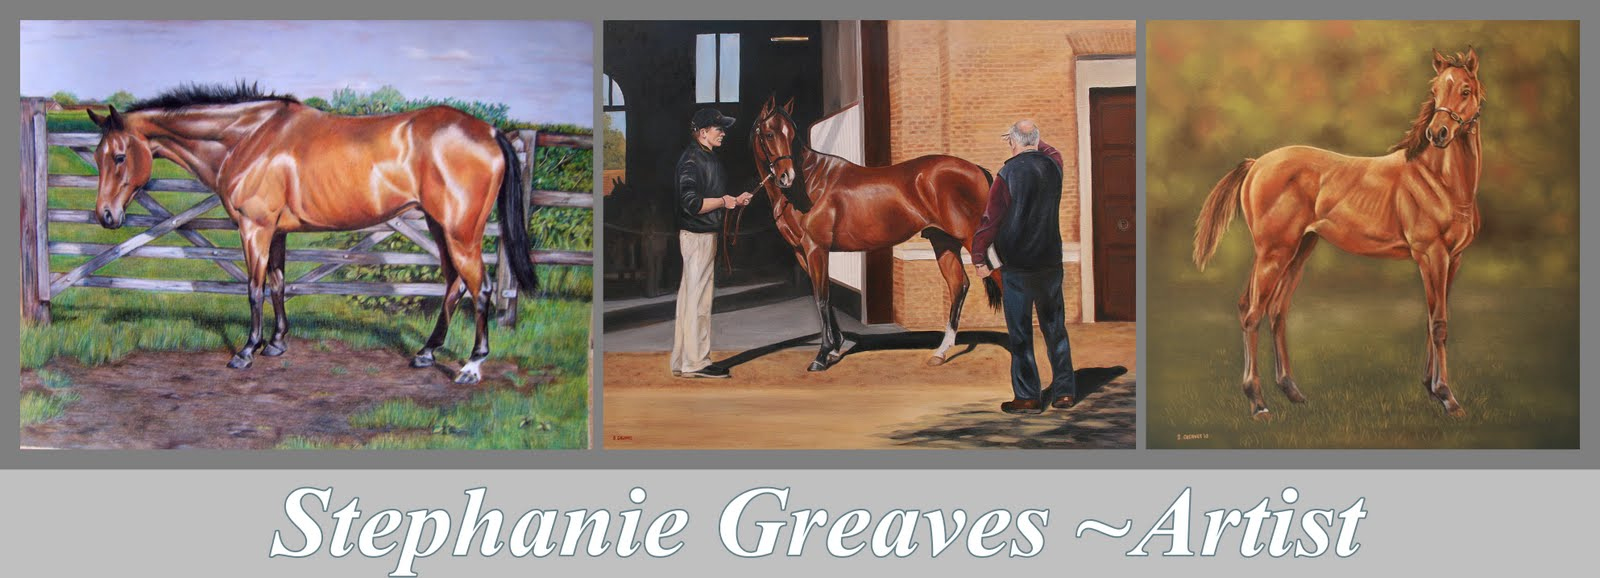 Stephanie Greaves, Artist